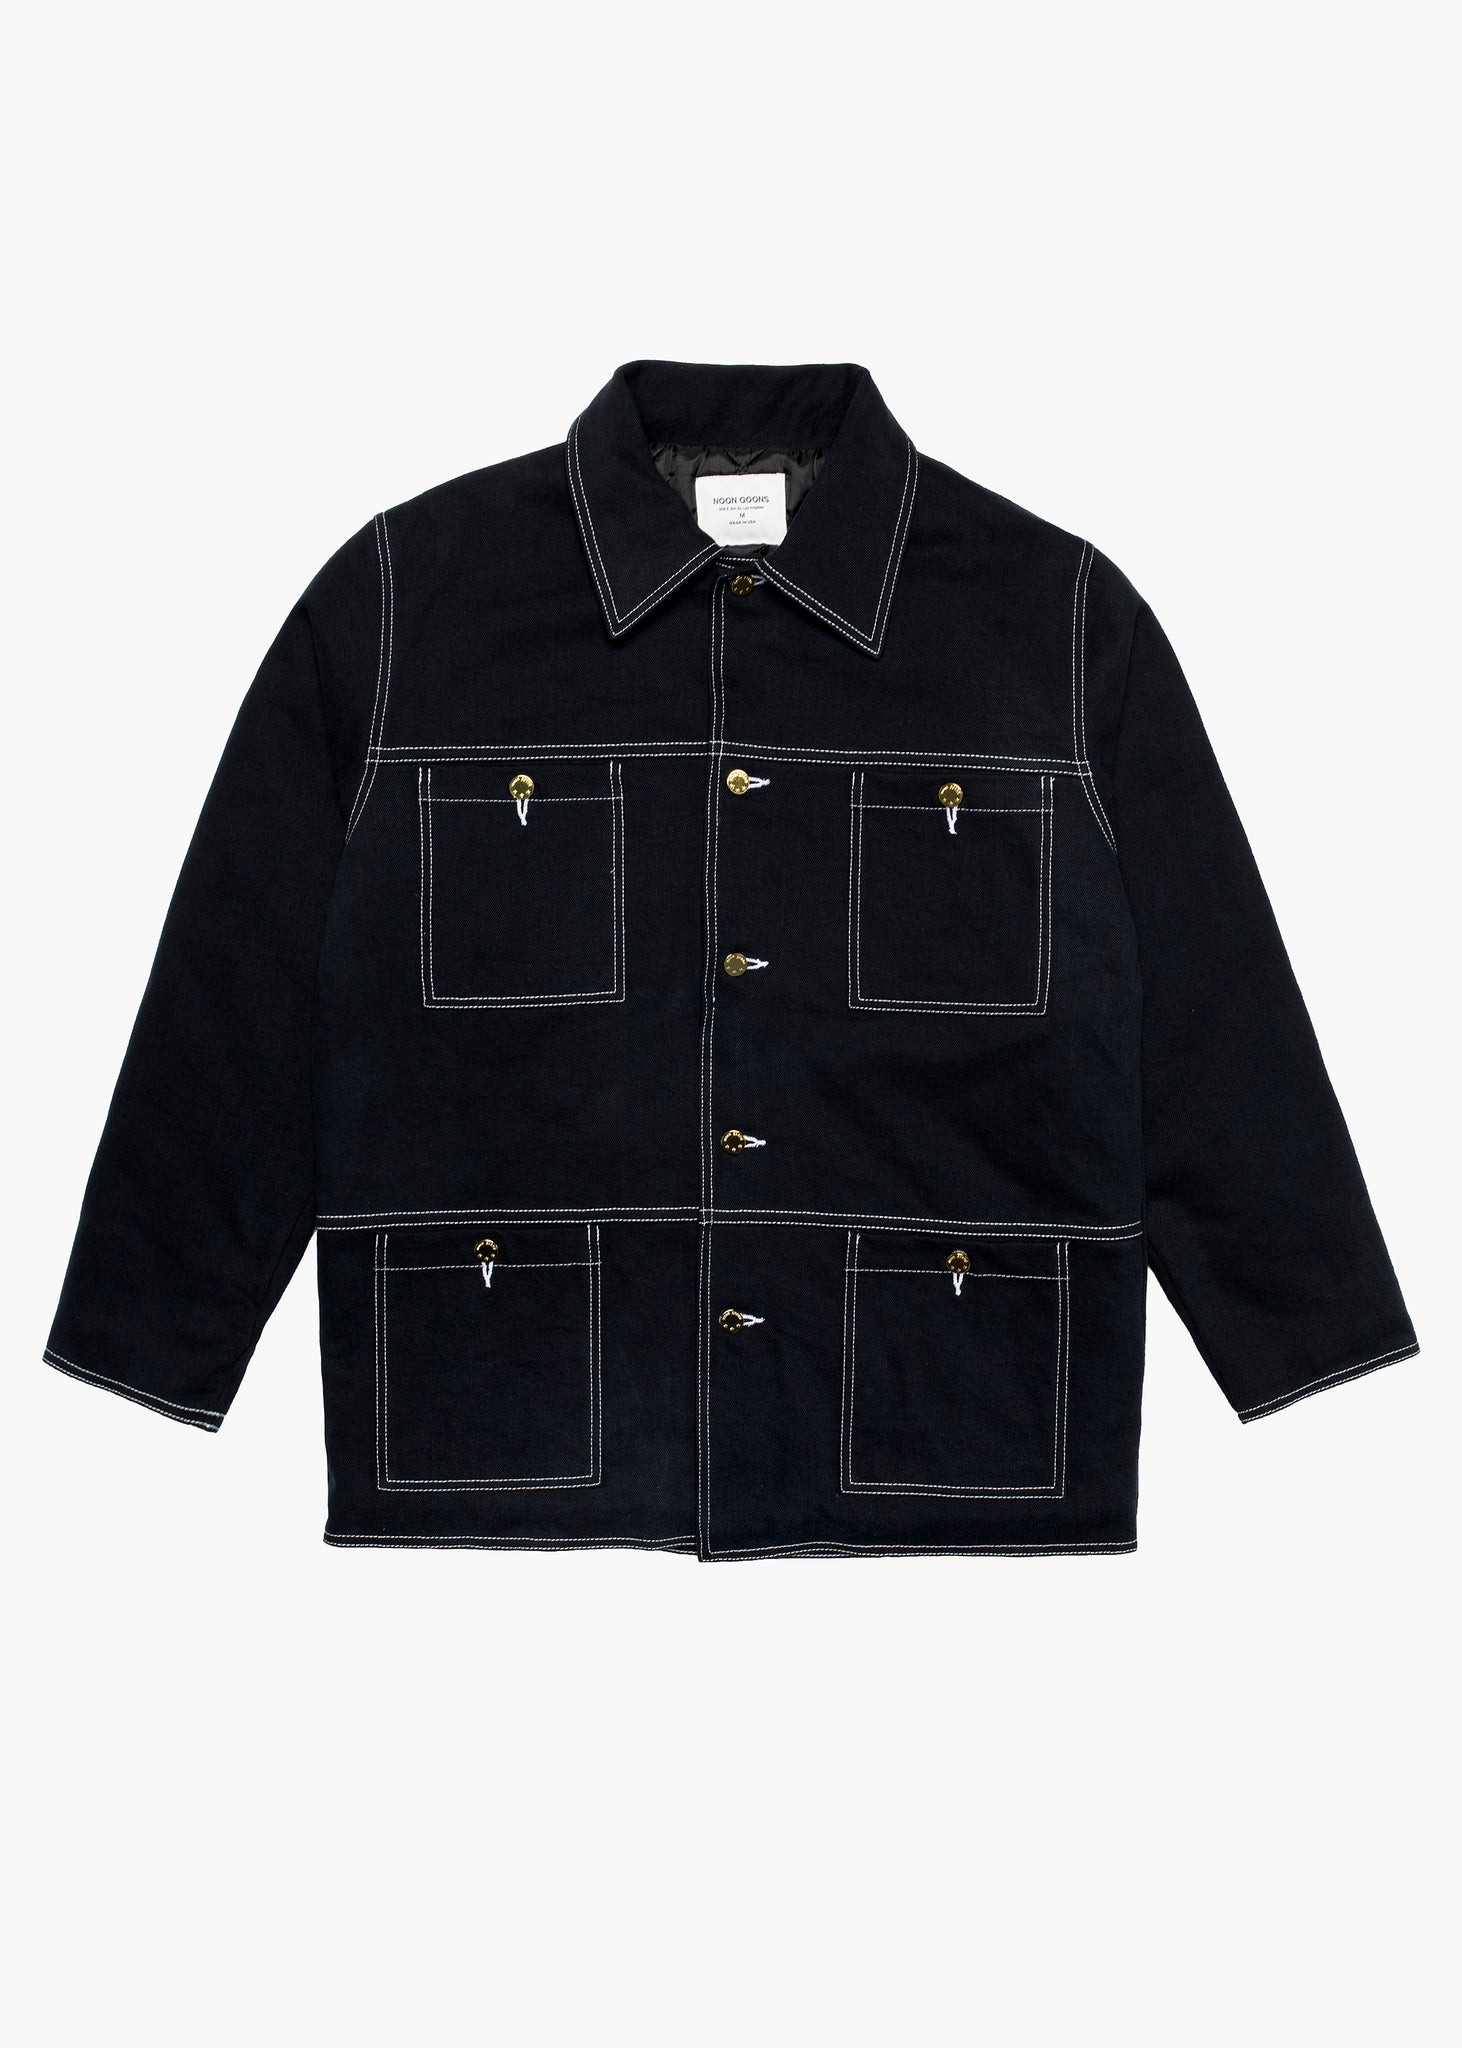 Oxnard Chore Coat - Navy